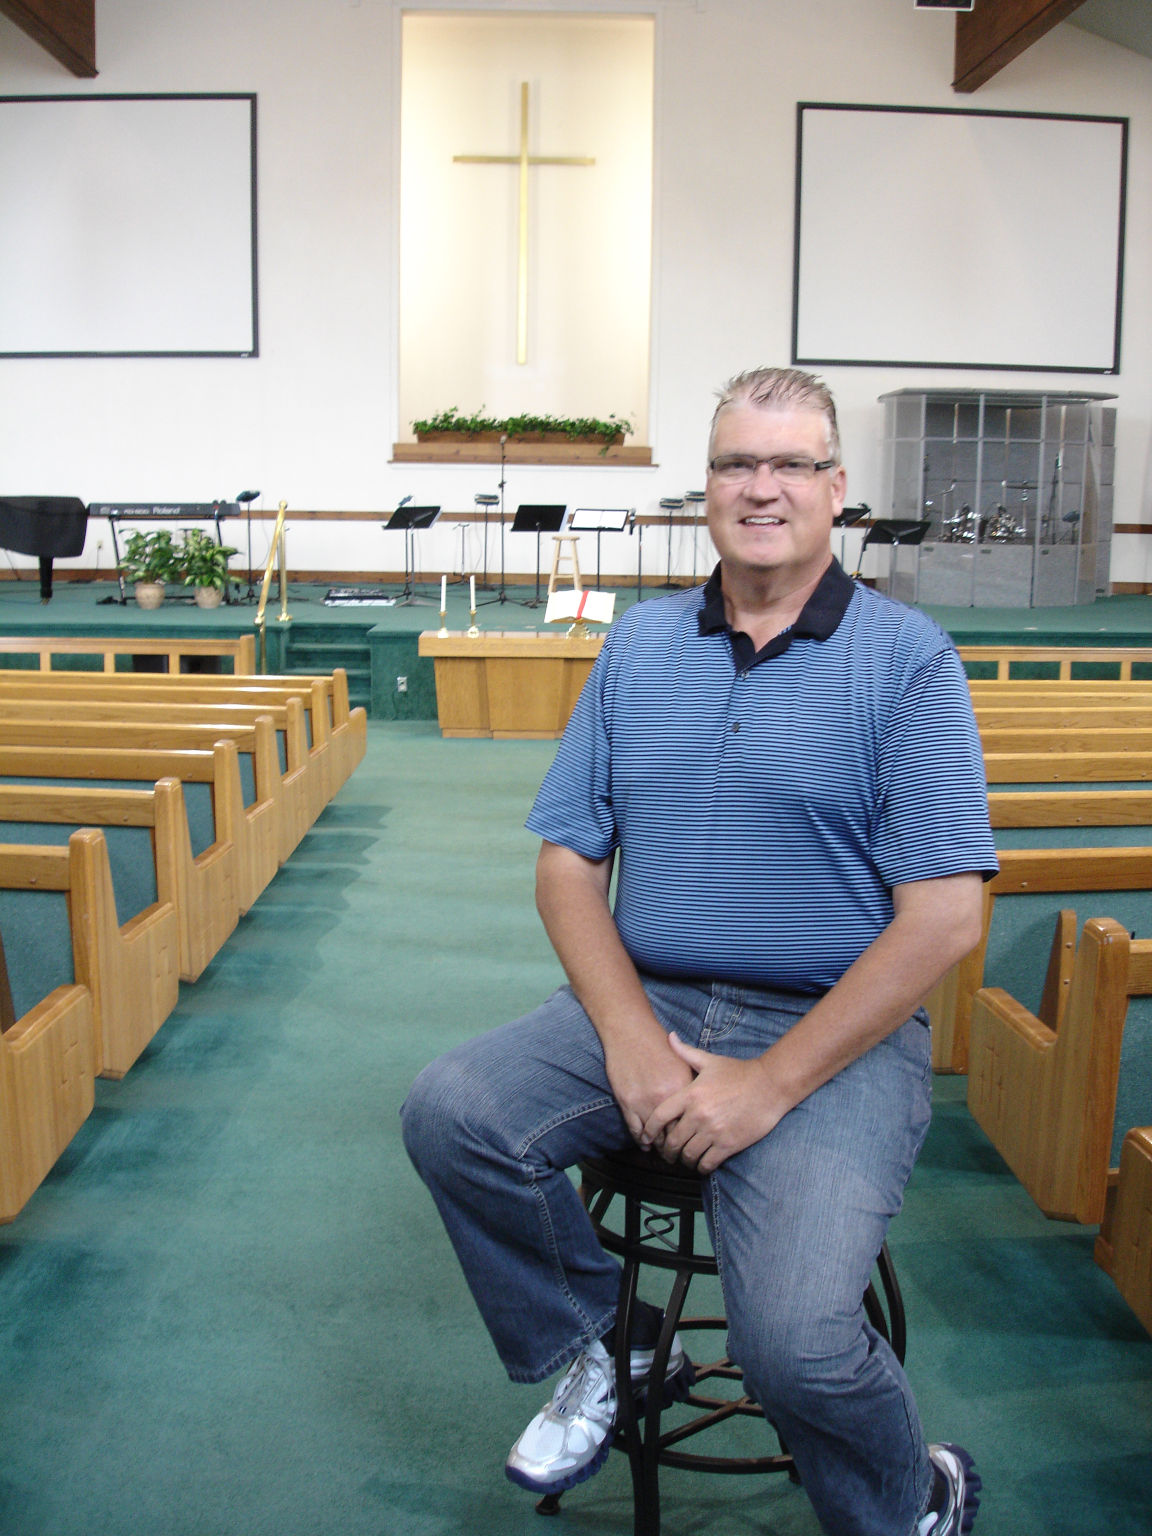 Graceful Losses Falls Pastor Among Those Benefiting By Weight Loss